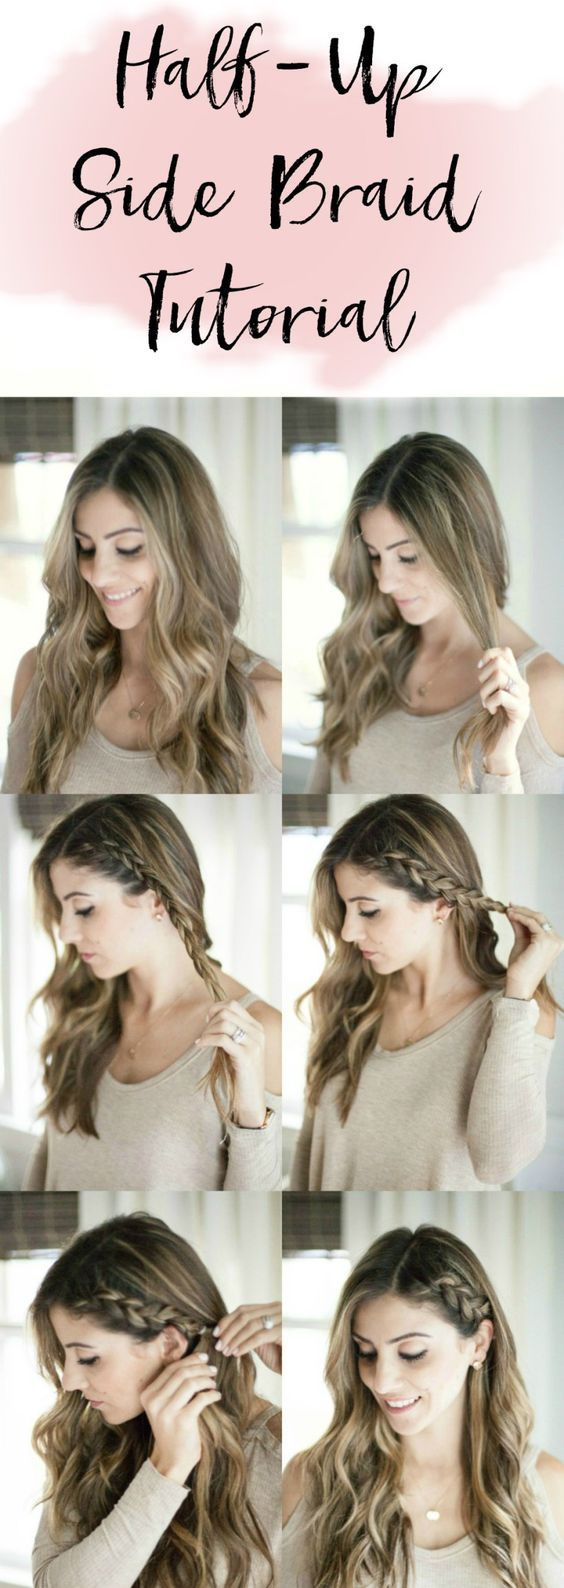 best 25+ casual hairstyles ideas on pinterest | casual updo